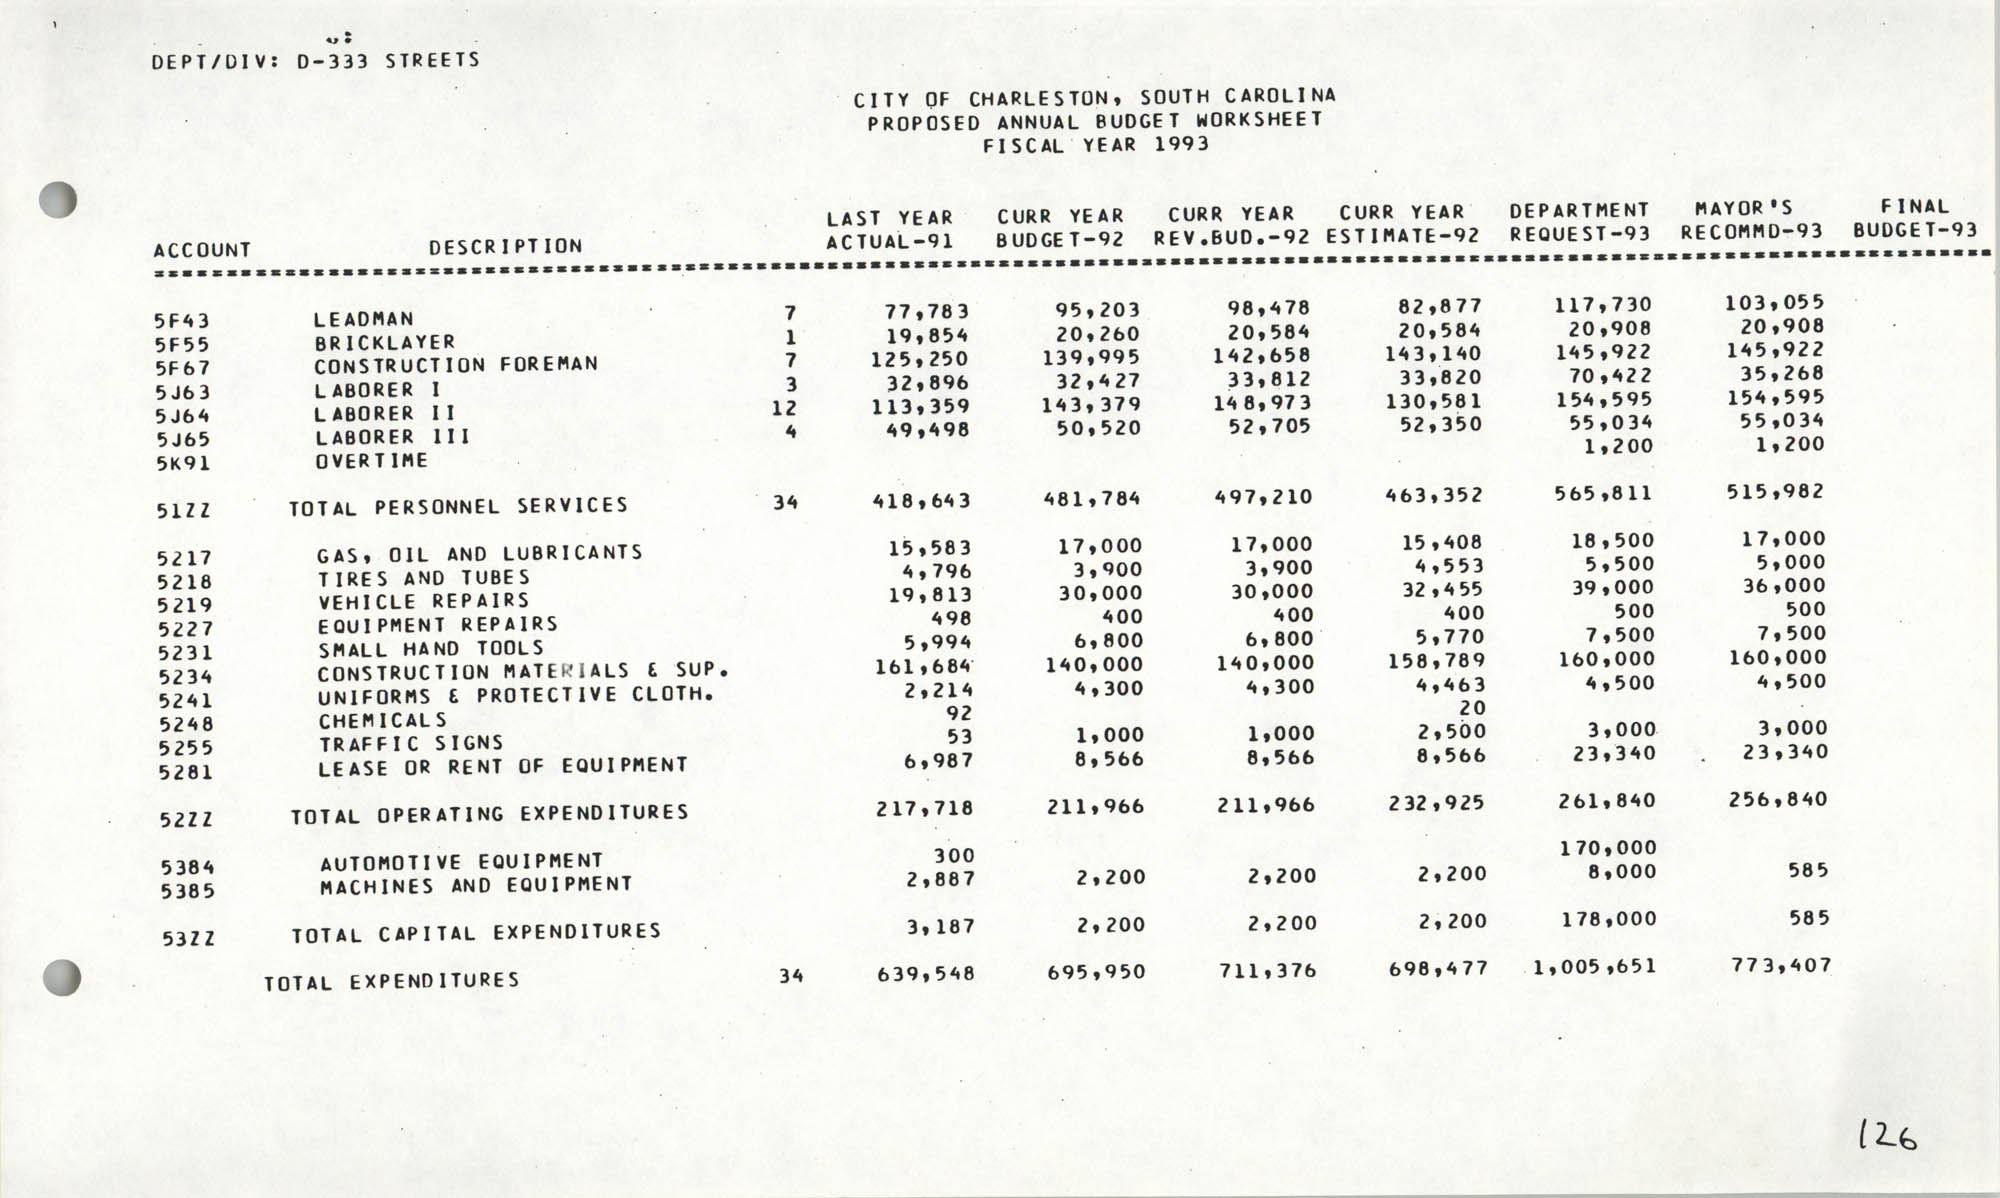 The City Council of Charleston, South Carolina, 1993 Budget, Page 126